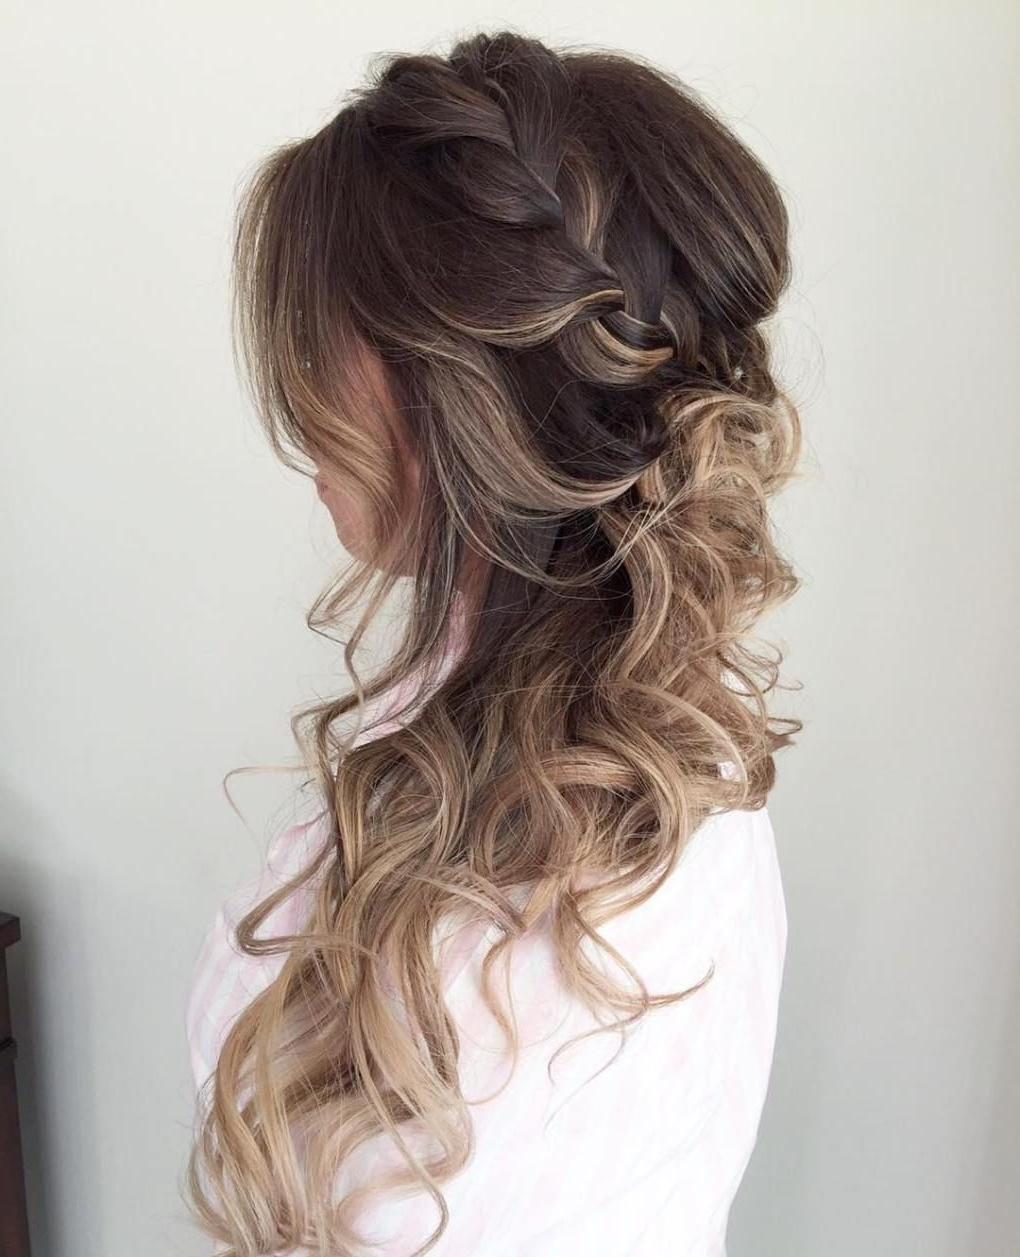 Side Hairstyle With A Braid For Long Hair | Locks | Pinterest | Side In Long Thin Hair Updo Hairstyles (View 11 of 15)